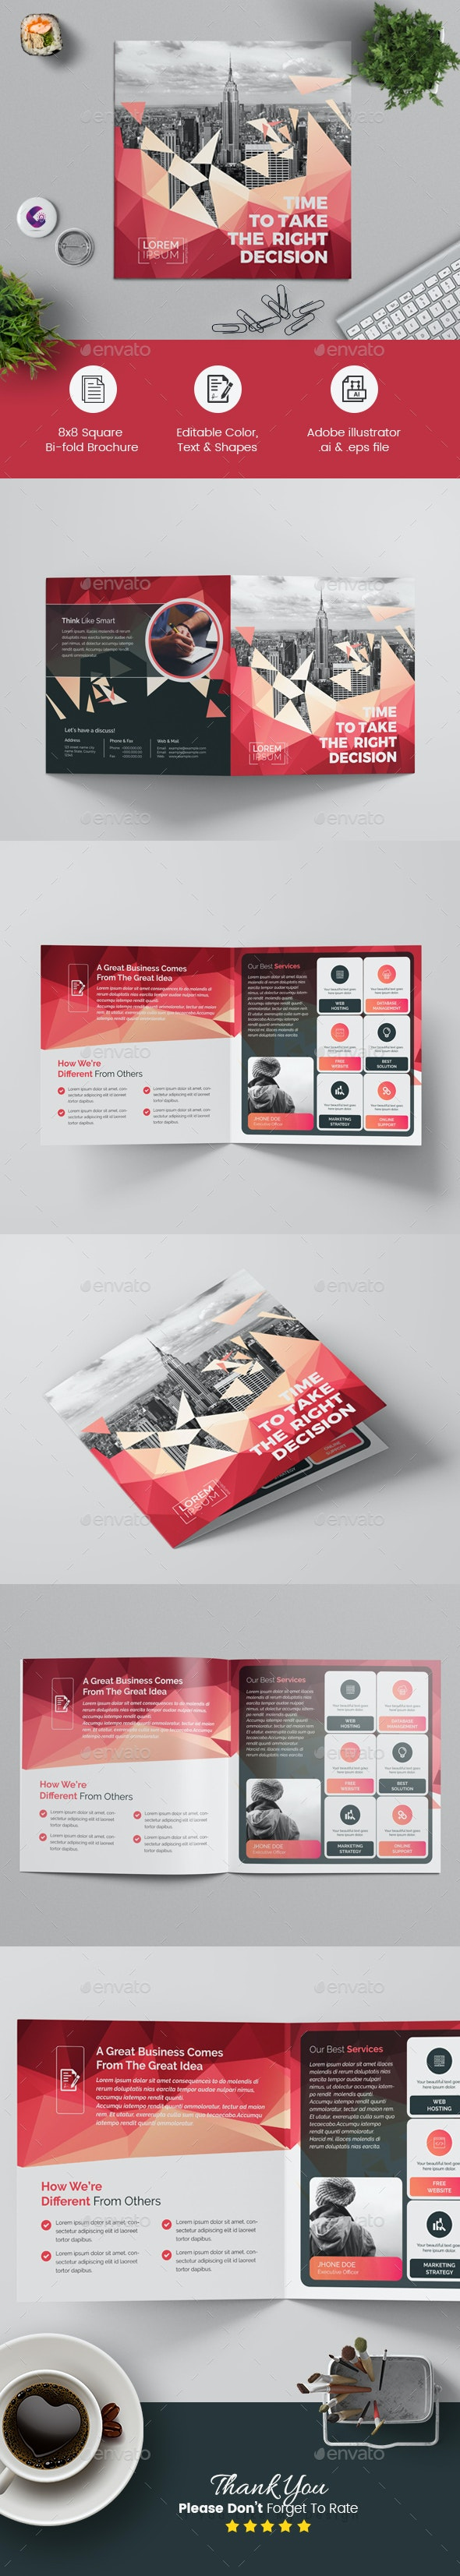 Geometric Square Bi-Fold Brochure - Corporate Brochures